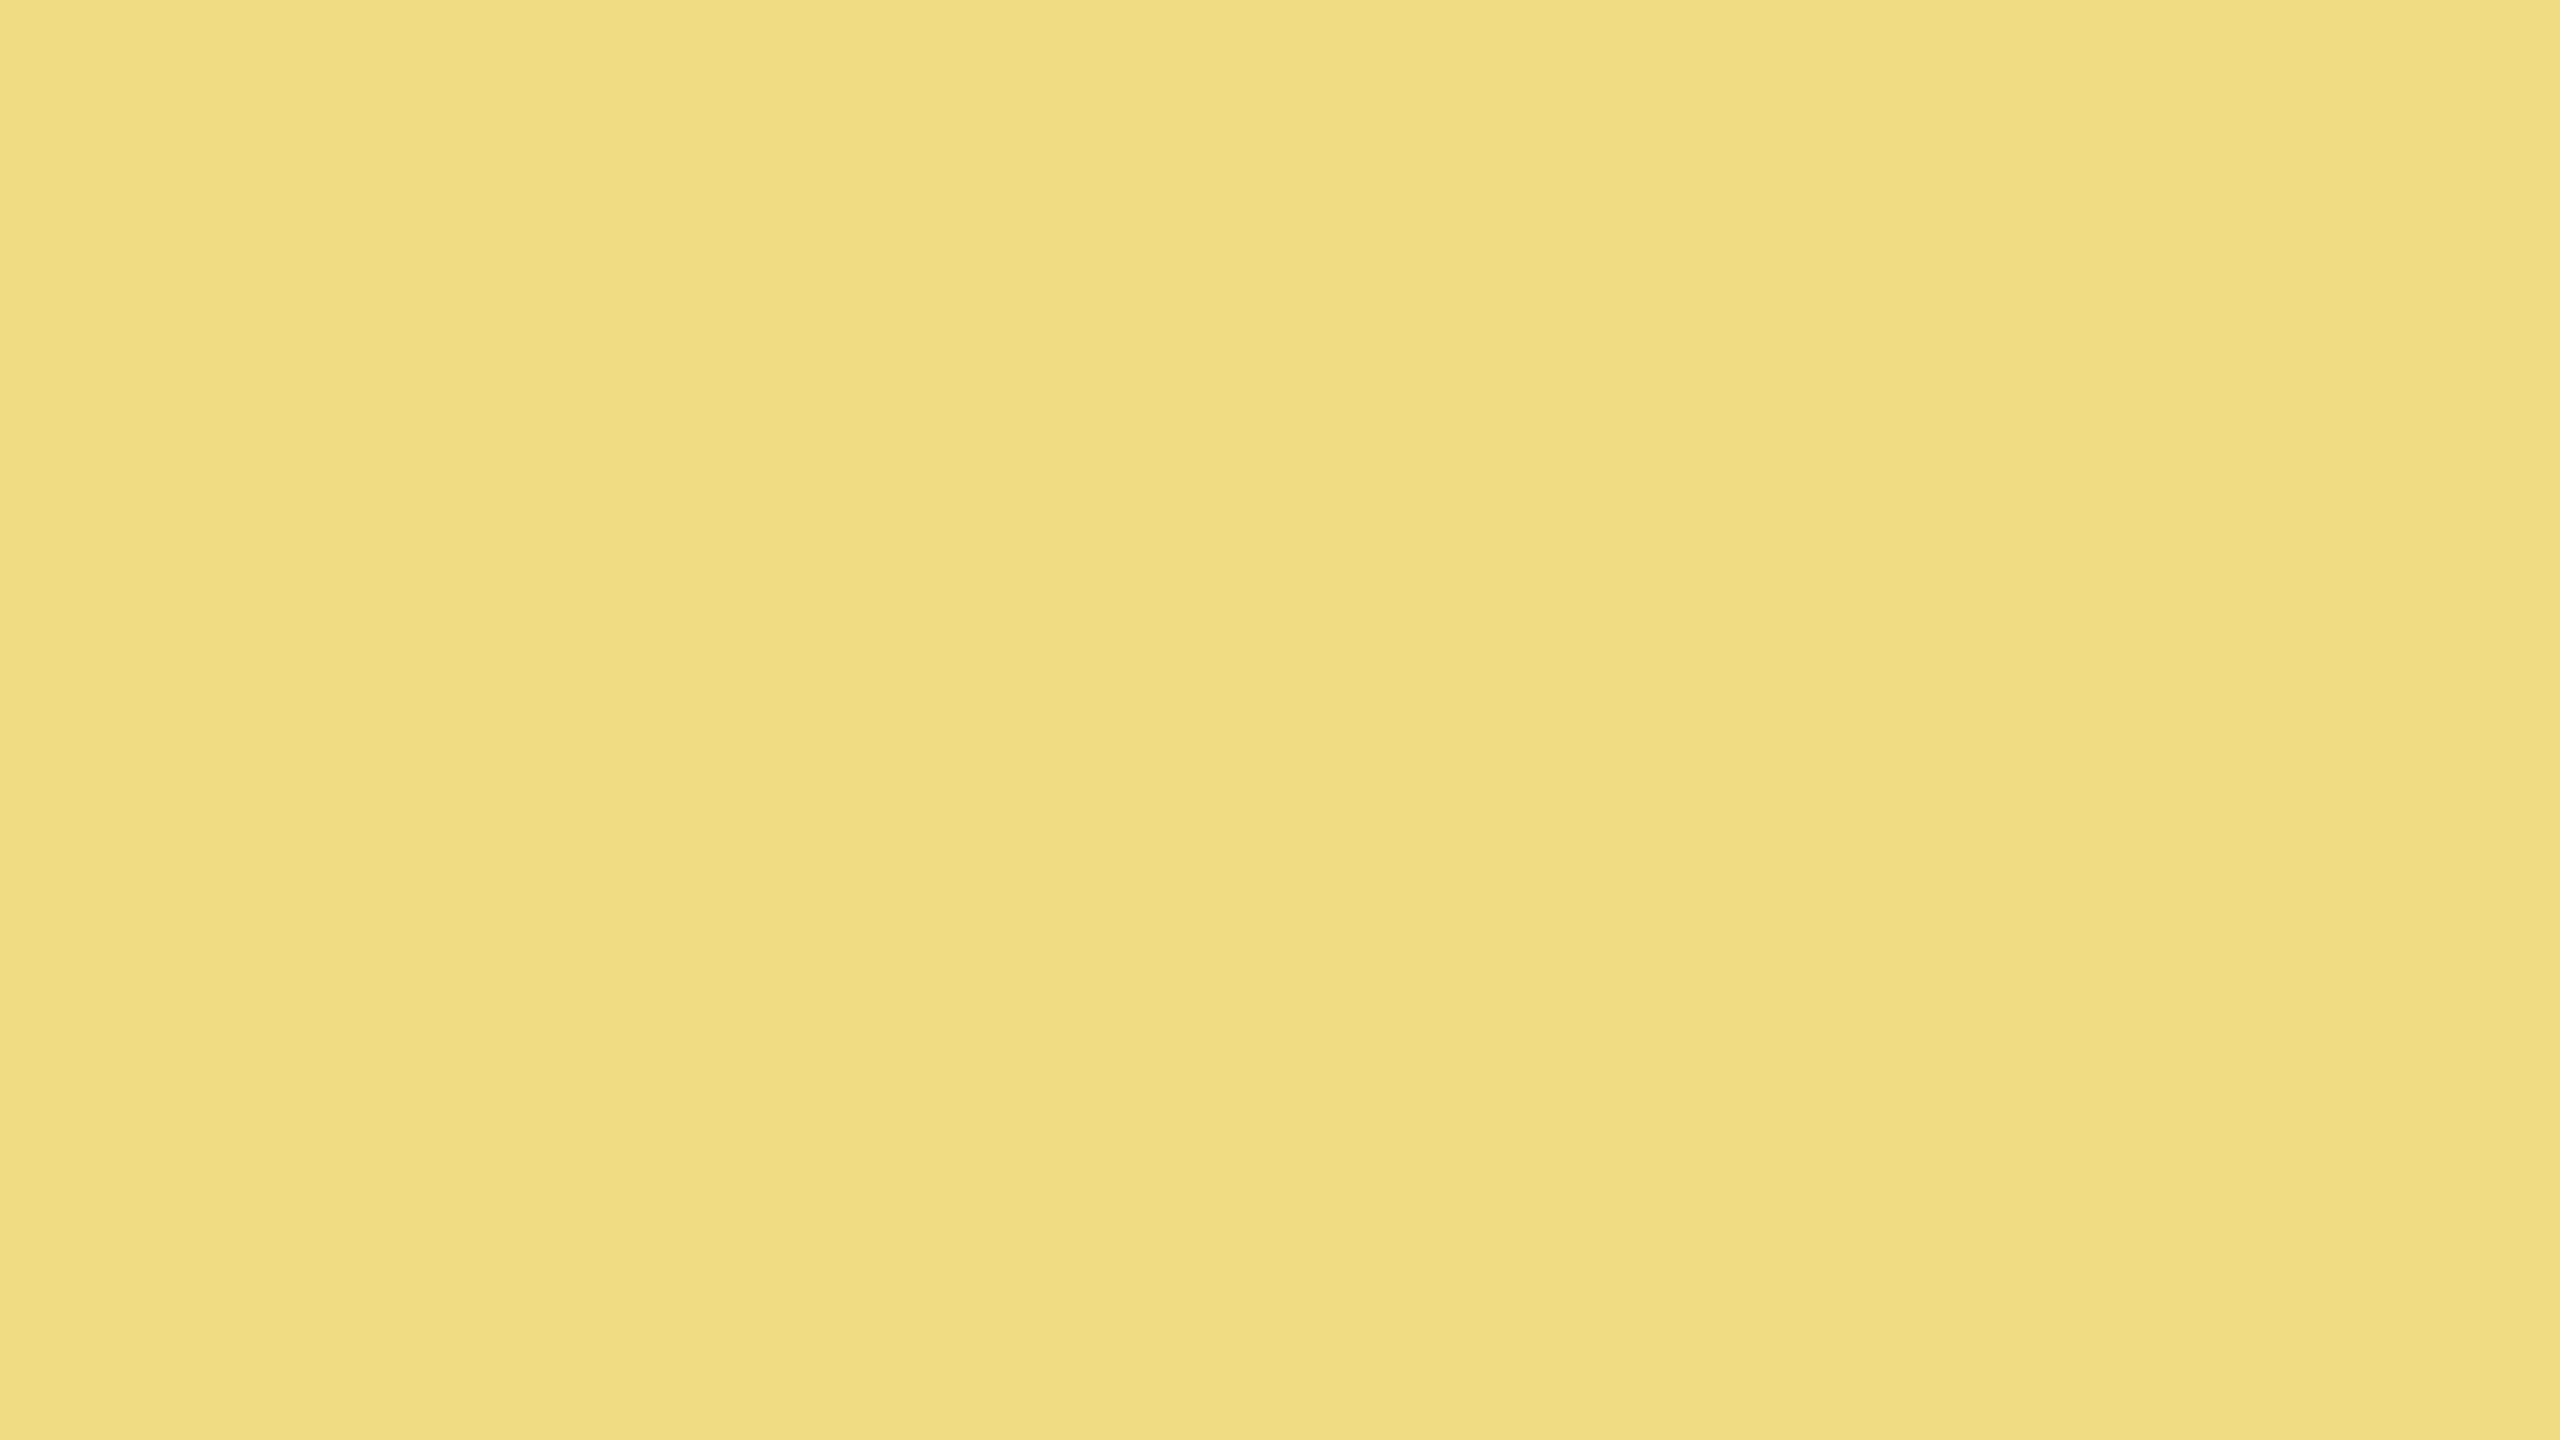 2560x1440 Buff Solid Color Background